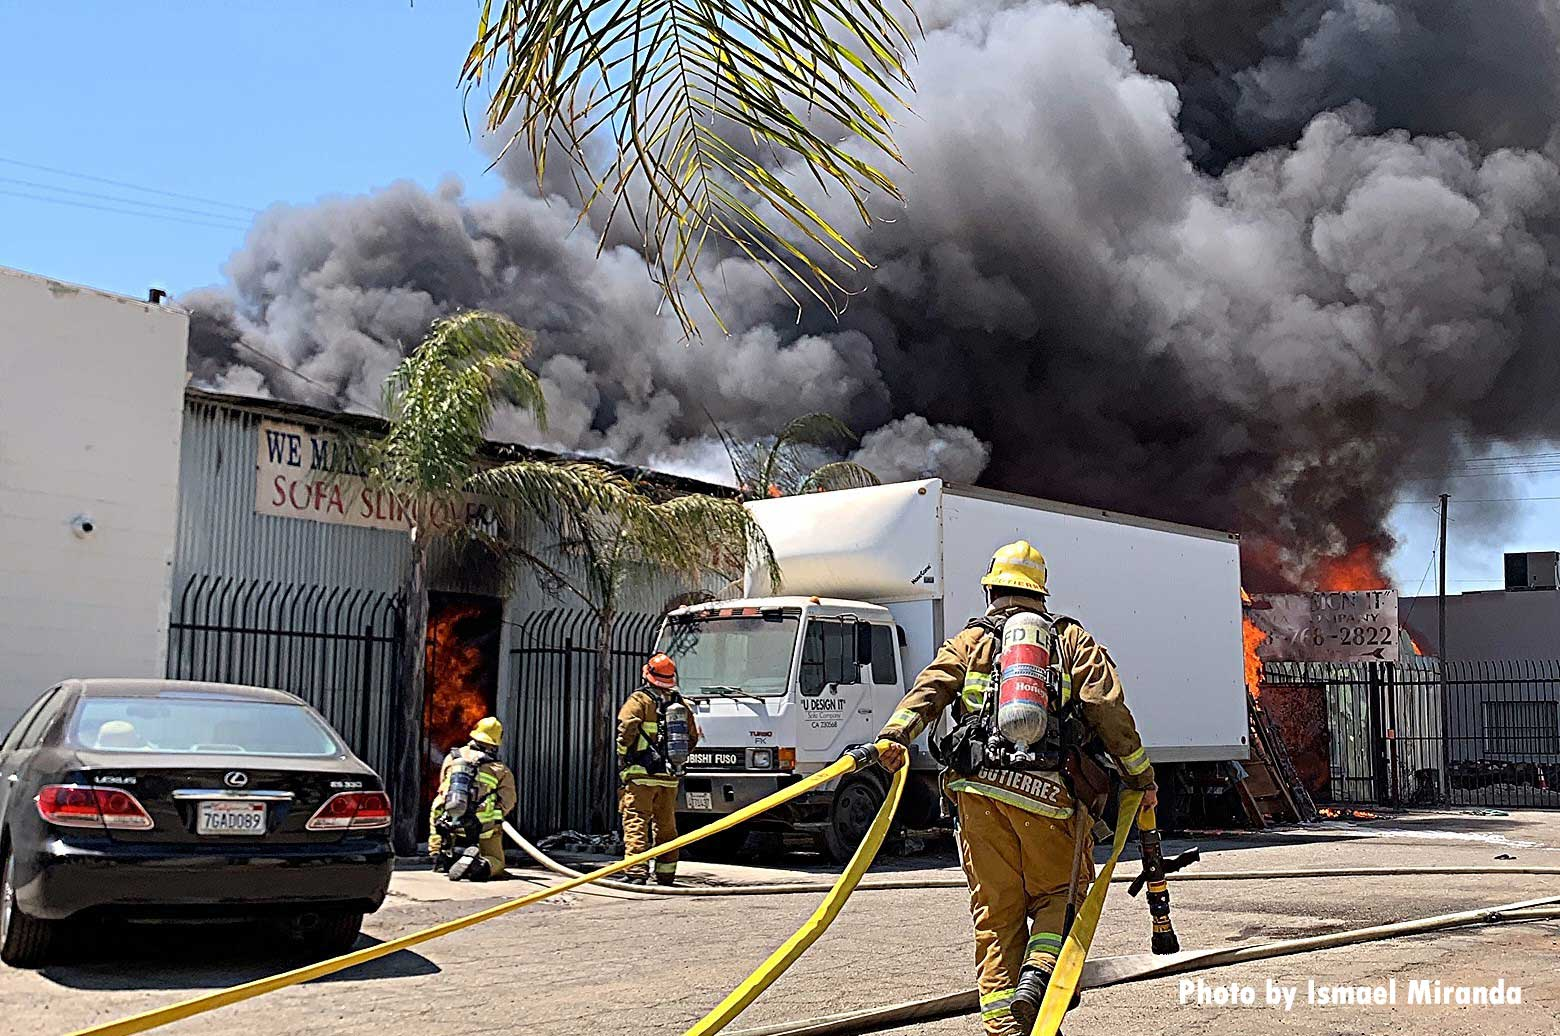 LAFD firefighters drag hoselines towards building with smoke showing